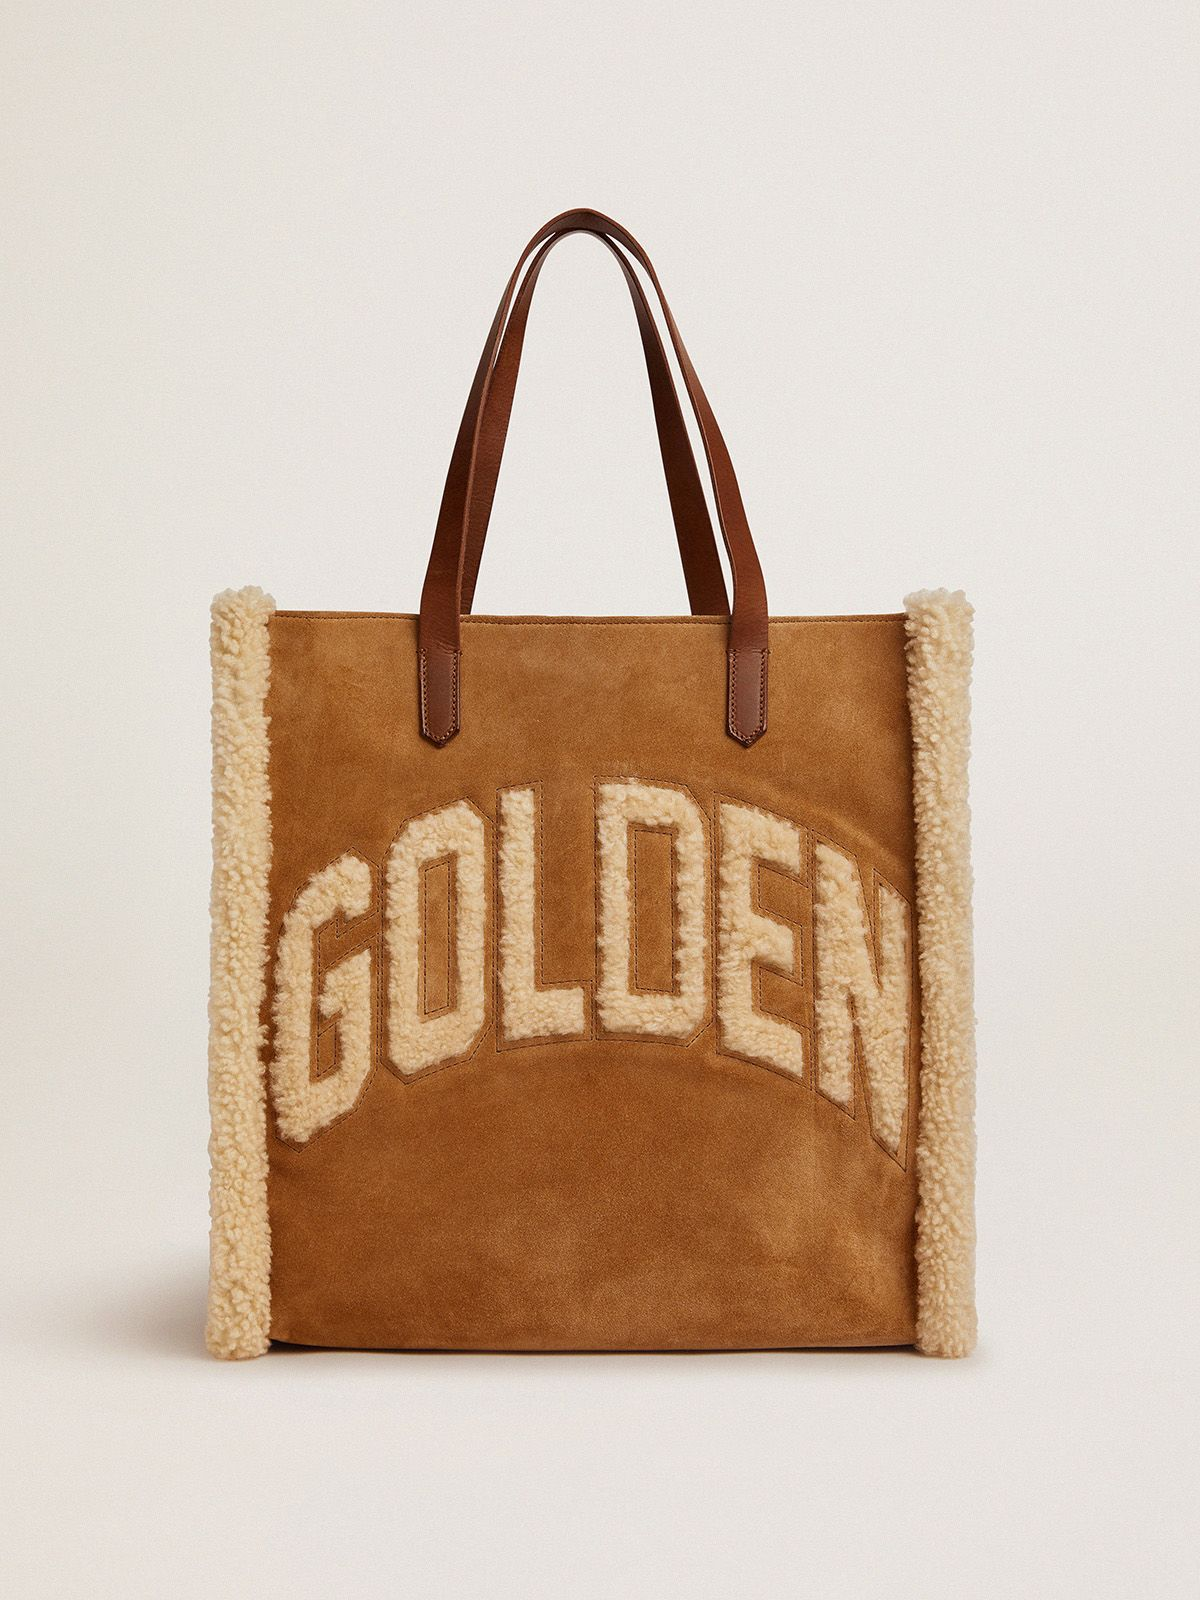 North-South California Bag in suede leather with shearling